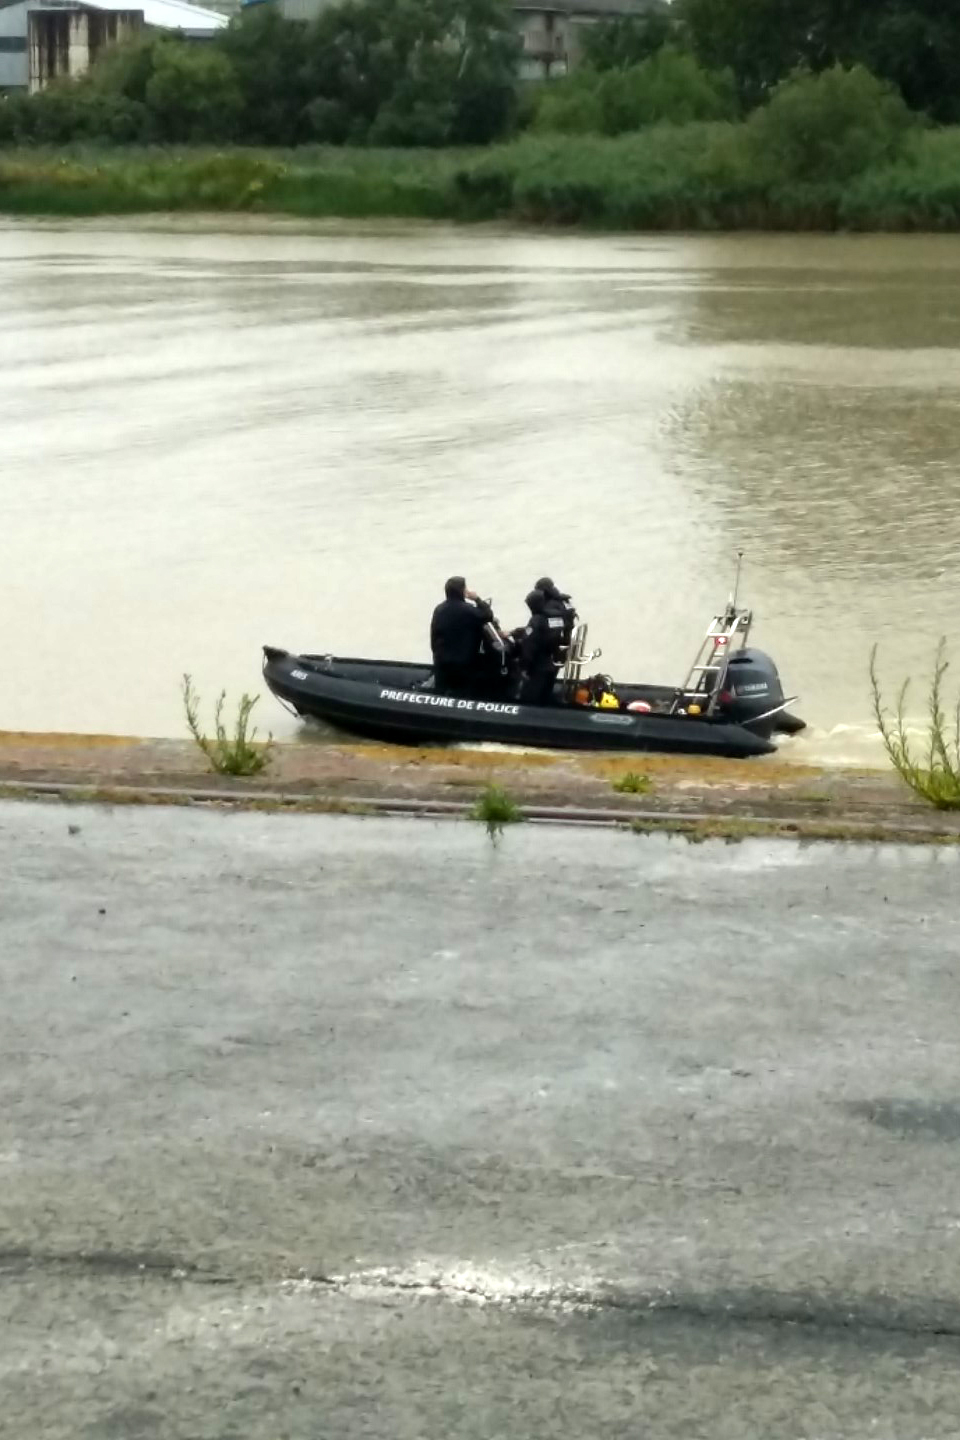 Police looking for the body on July 29